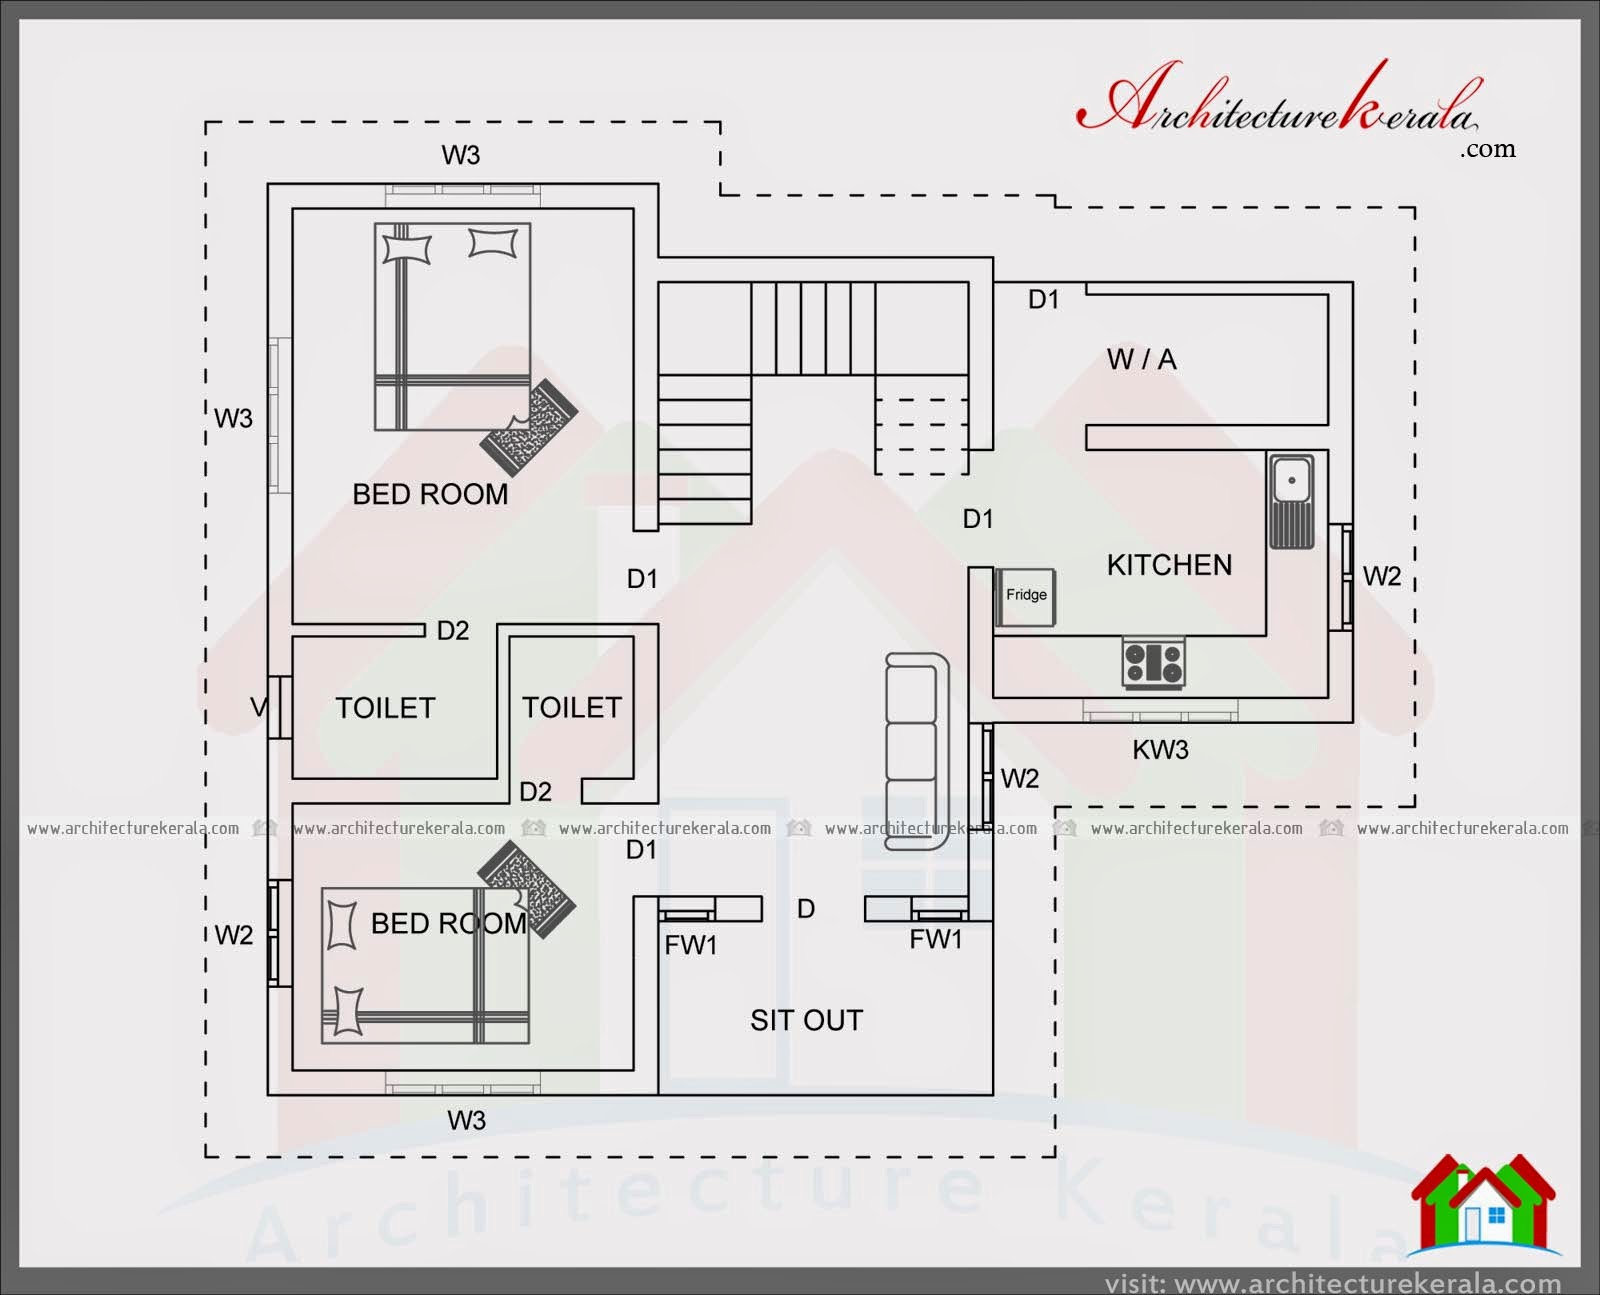 4 bedroom house plan in 1400 square feet architecture kerala